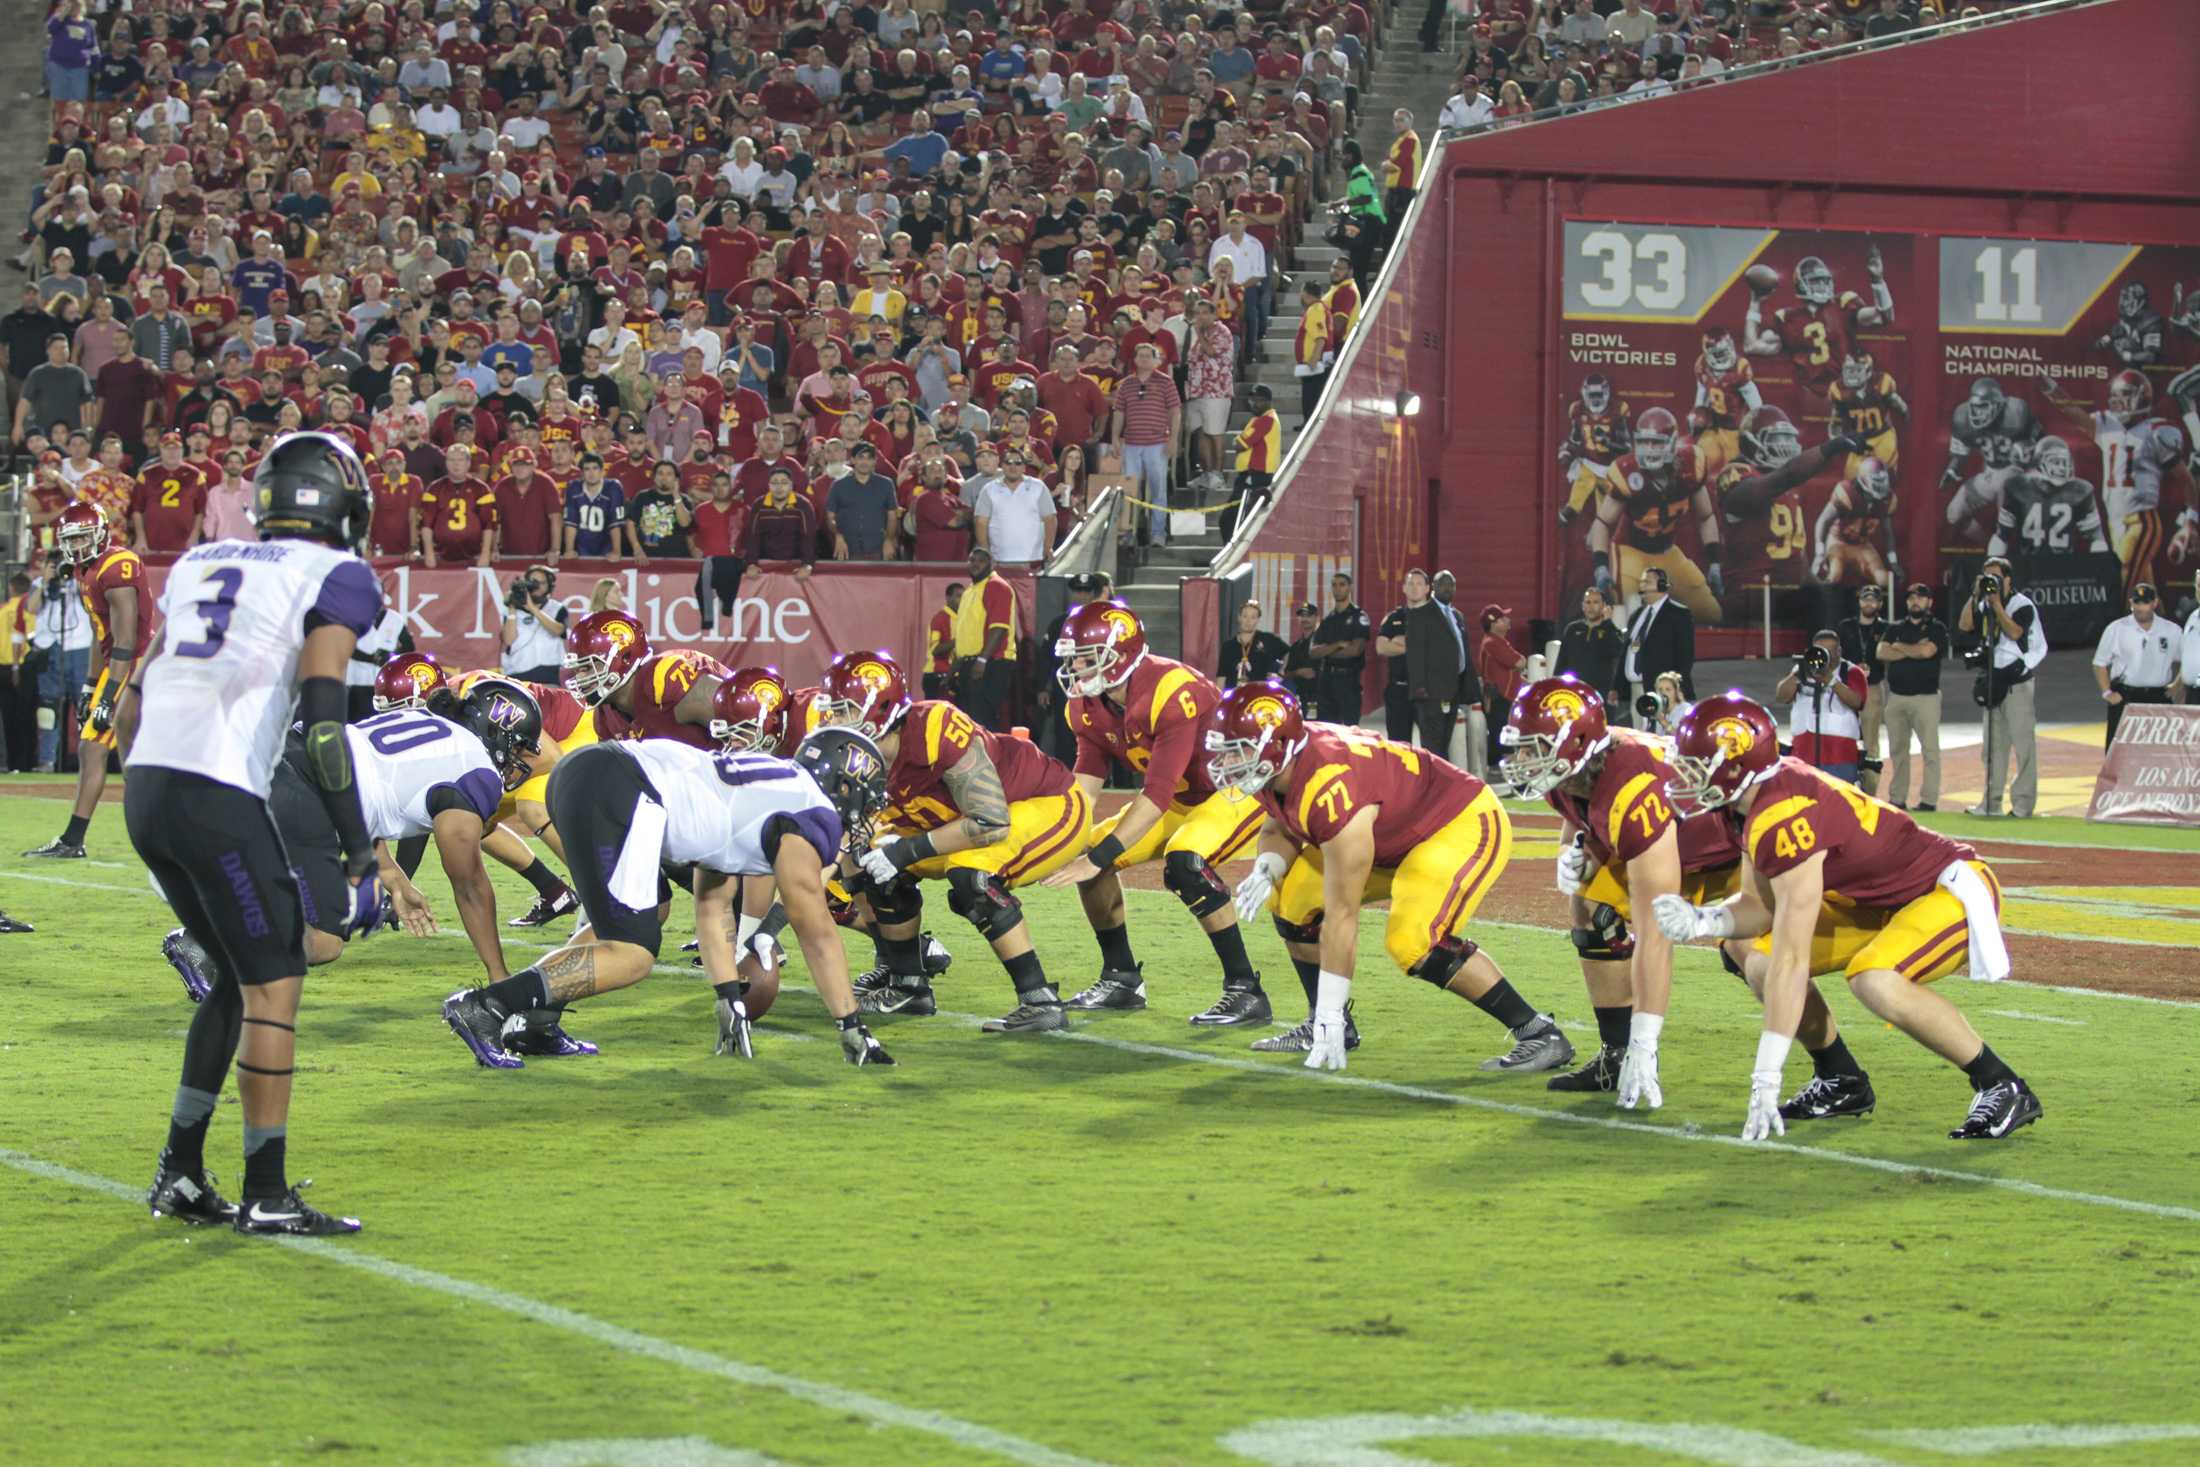 08 Oct. 2015: USC Trojans quarterback (6) Cody Kessler under center pre snap during a game against the Washington Huskies played at the Los Angeles Memorial Coliseum. (Photo By Jevone Moore/full Image 360)